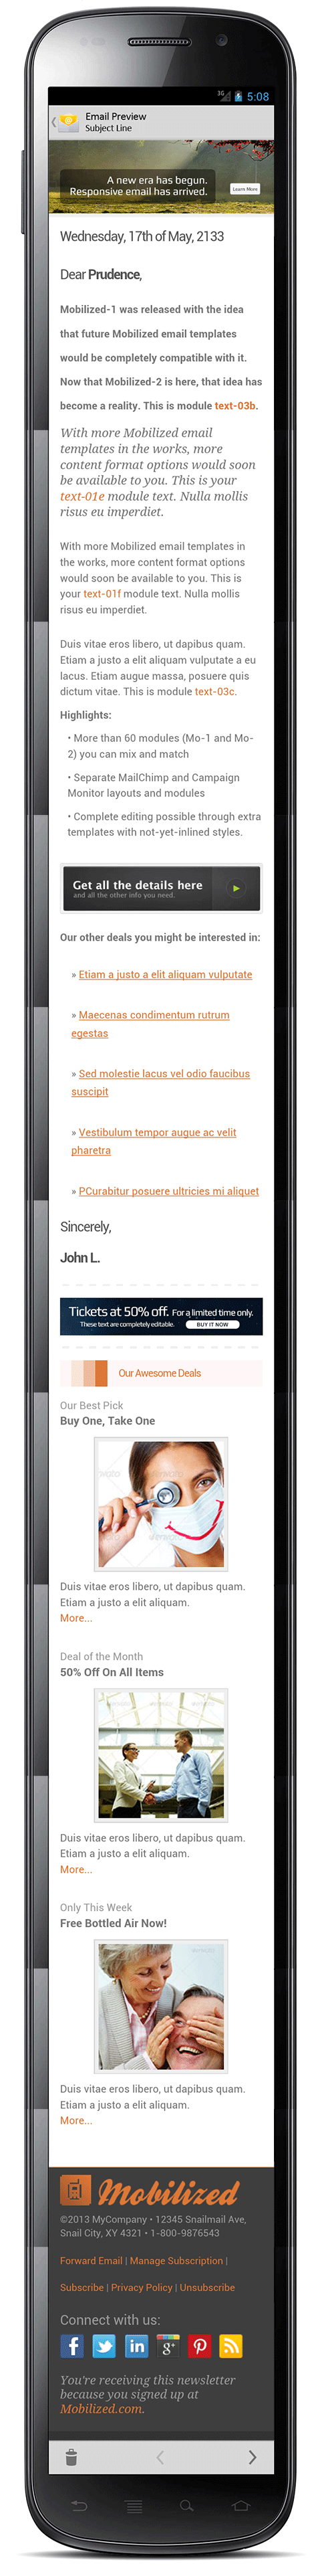 Mobilized-2 - Responsive & Modular Email Templates - Screenshot of layout12 in an Android 4 device.